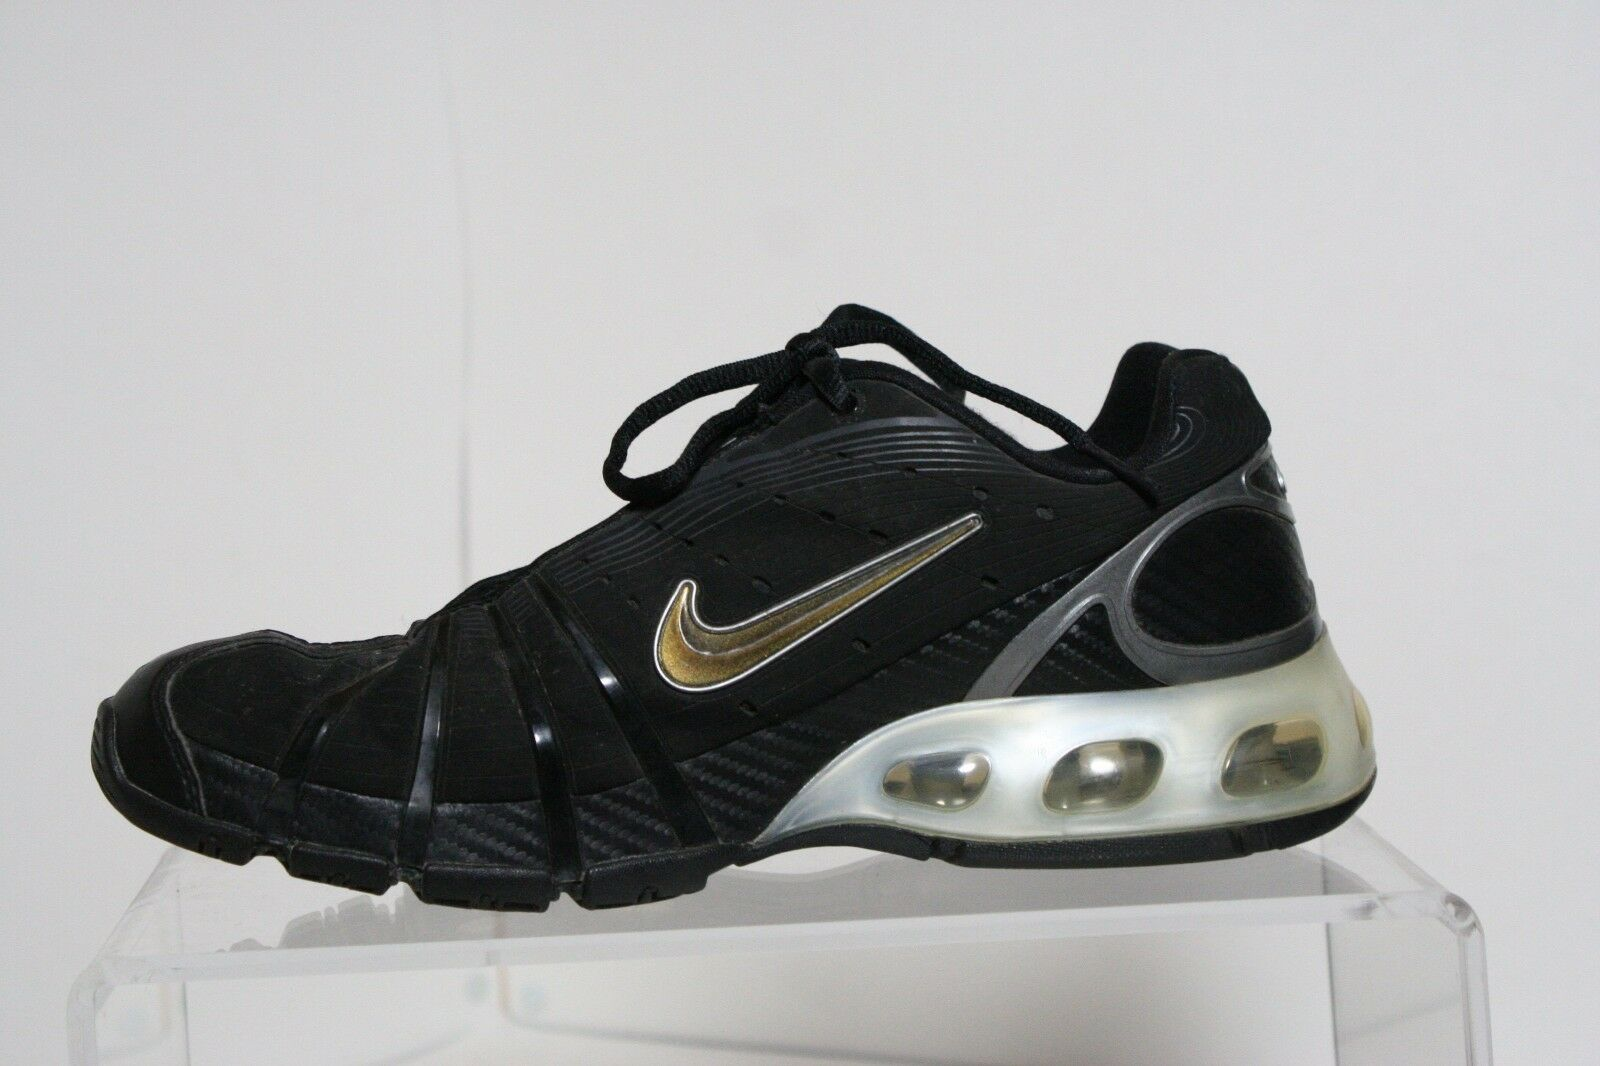 Nike air max. 180 '06 läuft sneaker athletic multi multi multi - schwarze 8,5 hippen retro a6dad5